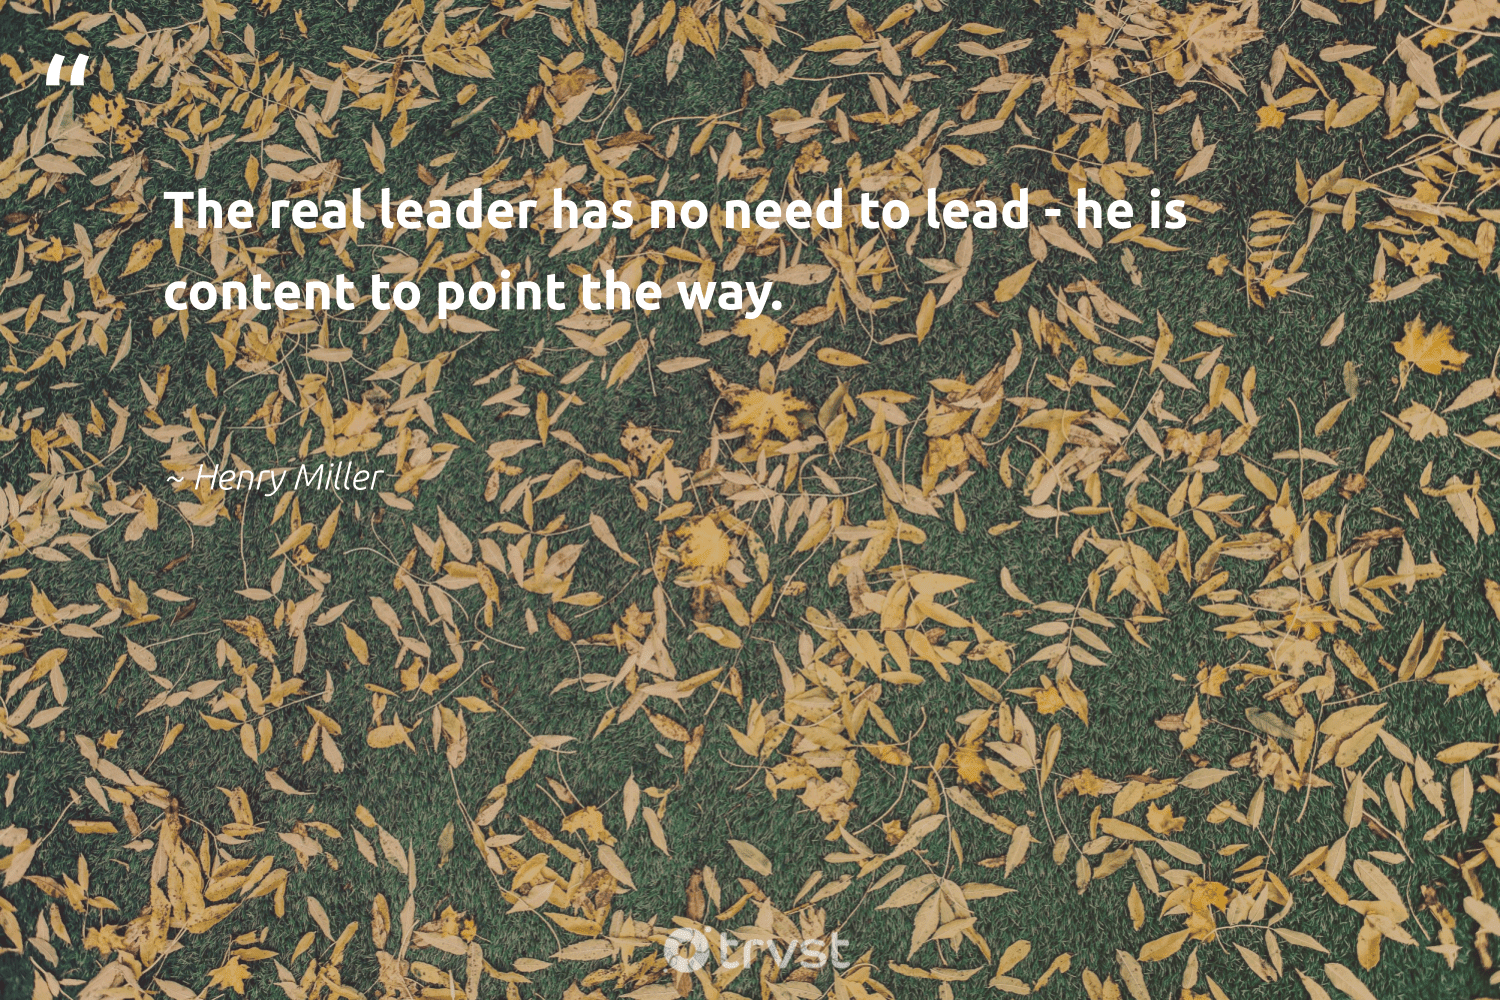 """The real leader has no need to lead - he is content to point the way.""  - Henry Miller #trvst #quotes #begreat #bethechange #futureofwork #dosomething #nevergiveup #takeaction #softskills #ecoconscious #dotherightthing #gogreen"